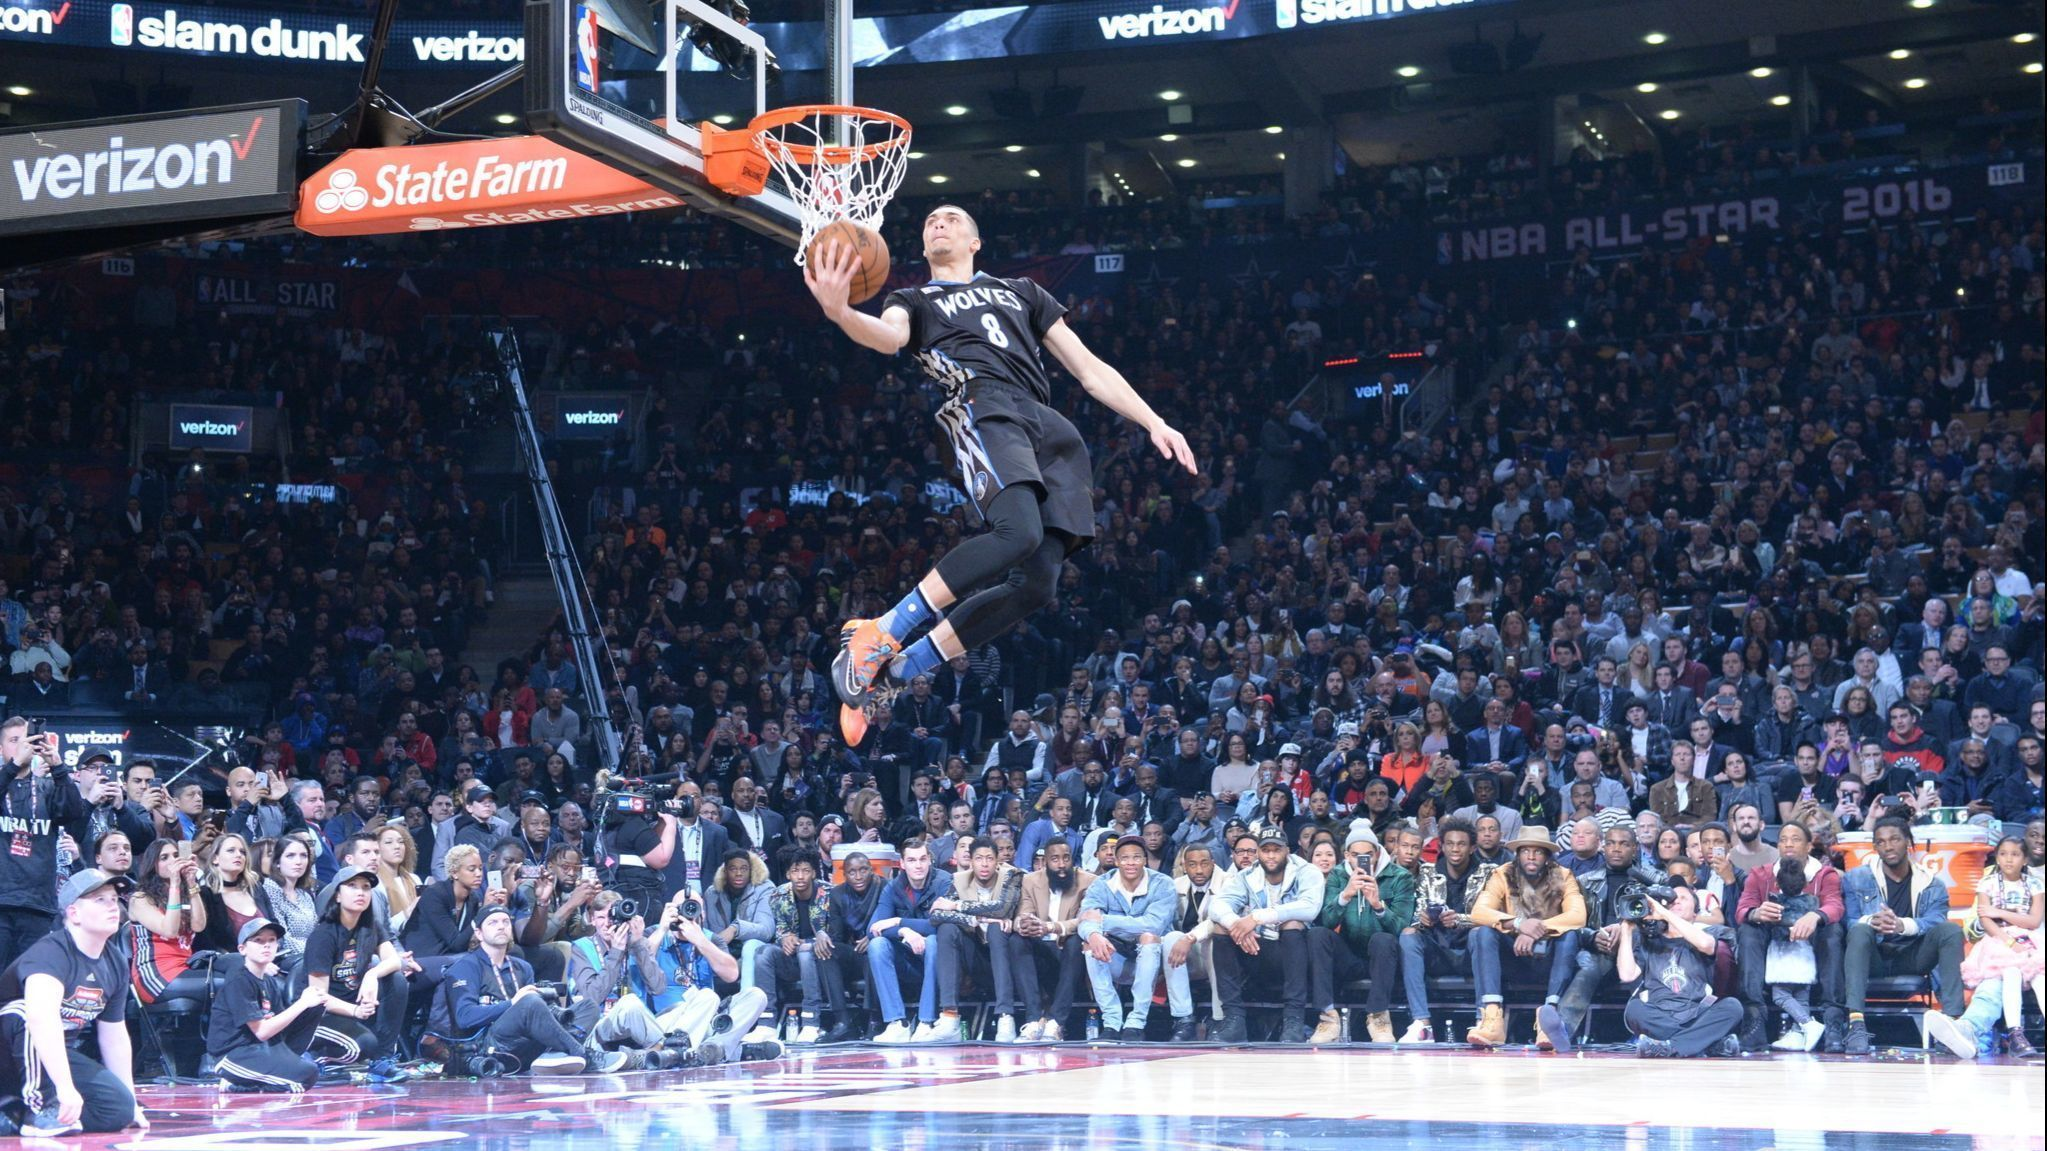 I m a showman   The 2020 NBA All-Star weekend in Chicago gives Zach LaVine  a chance to Be Like Mike. Verizon Slam Dunk Contest 2016 b324ea43d20b